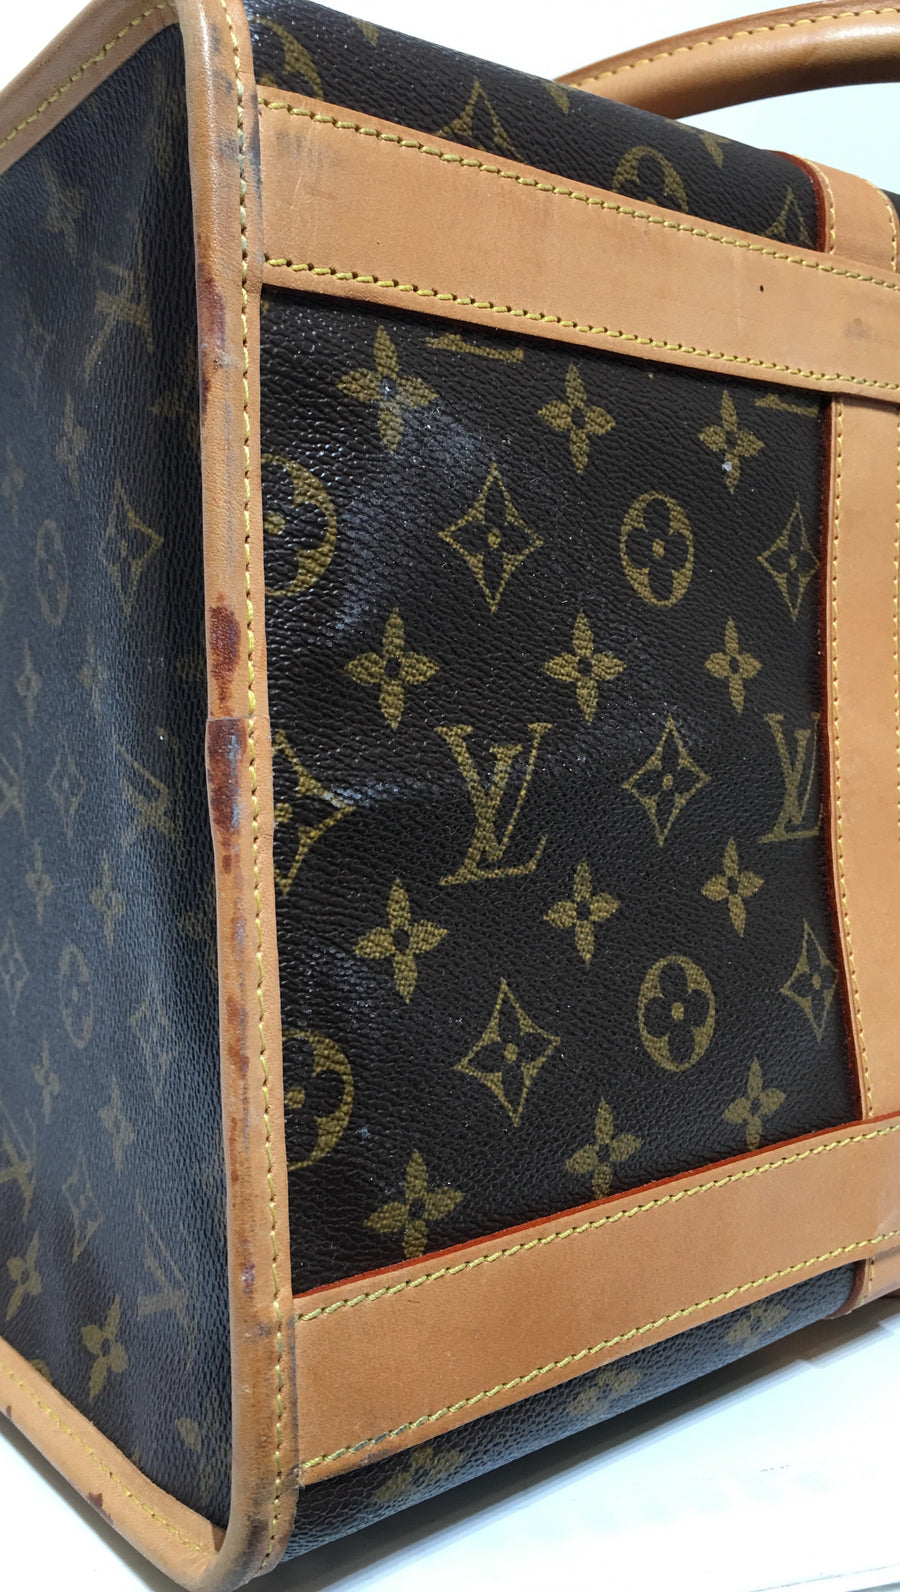 LOUIS VUITTON/Dog Carrier/Sac Chien/Monogram